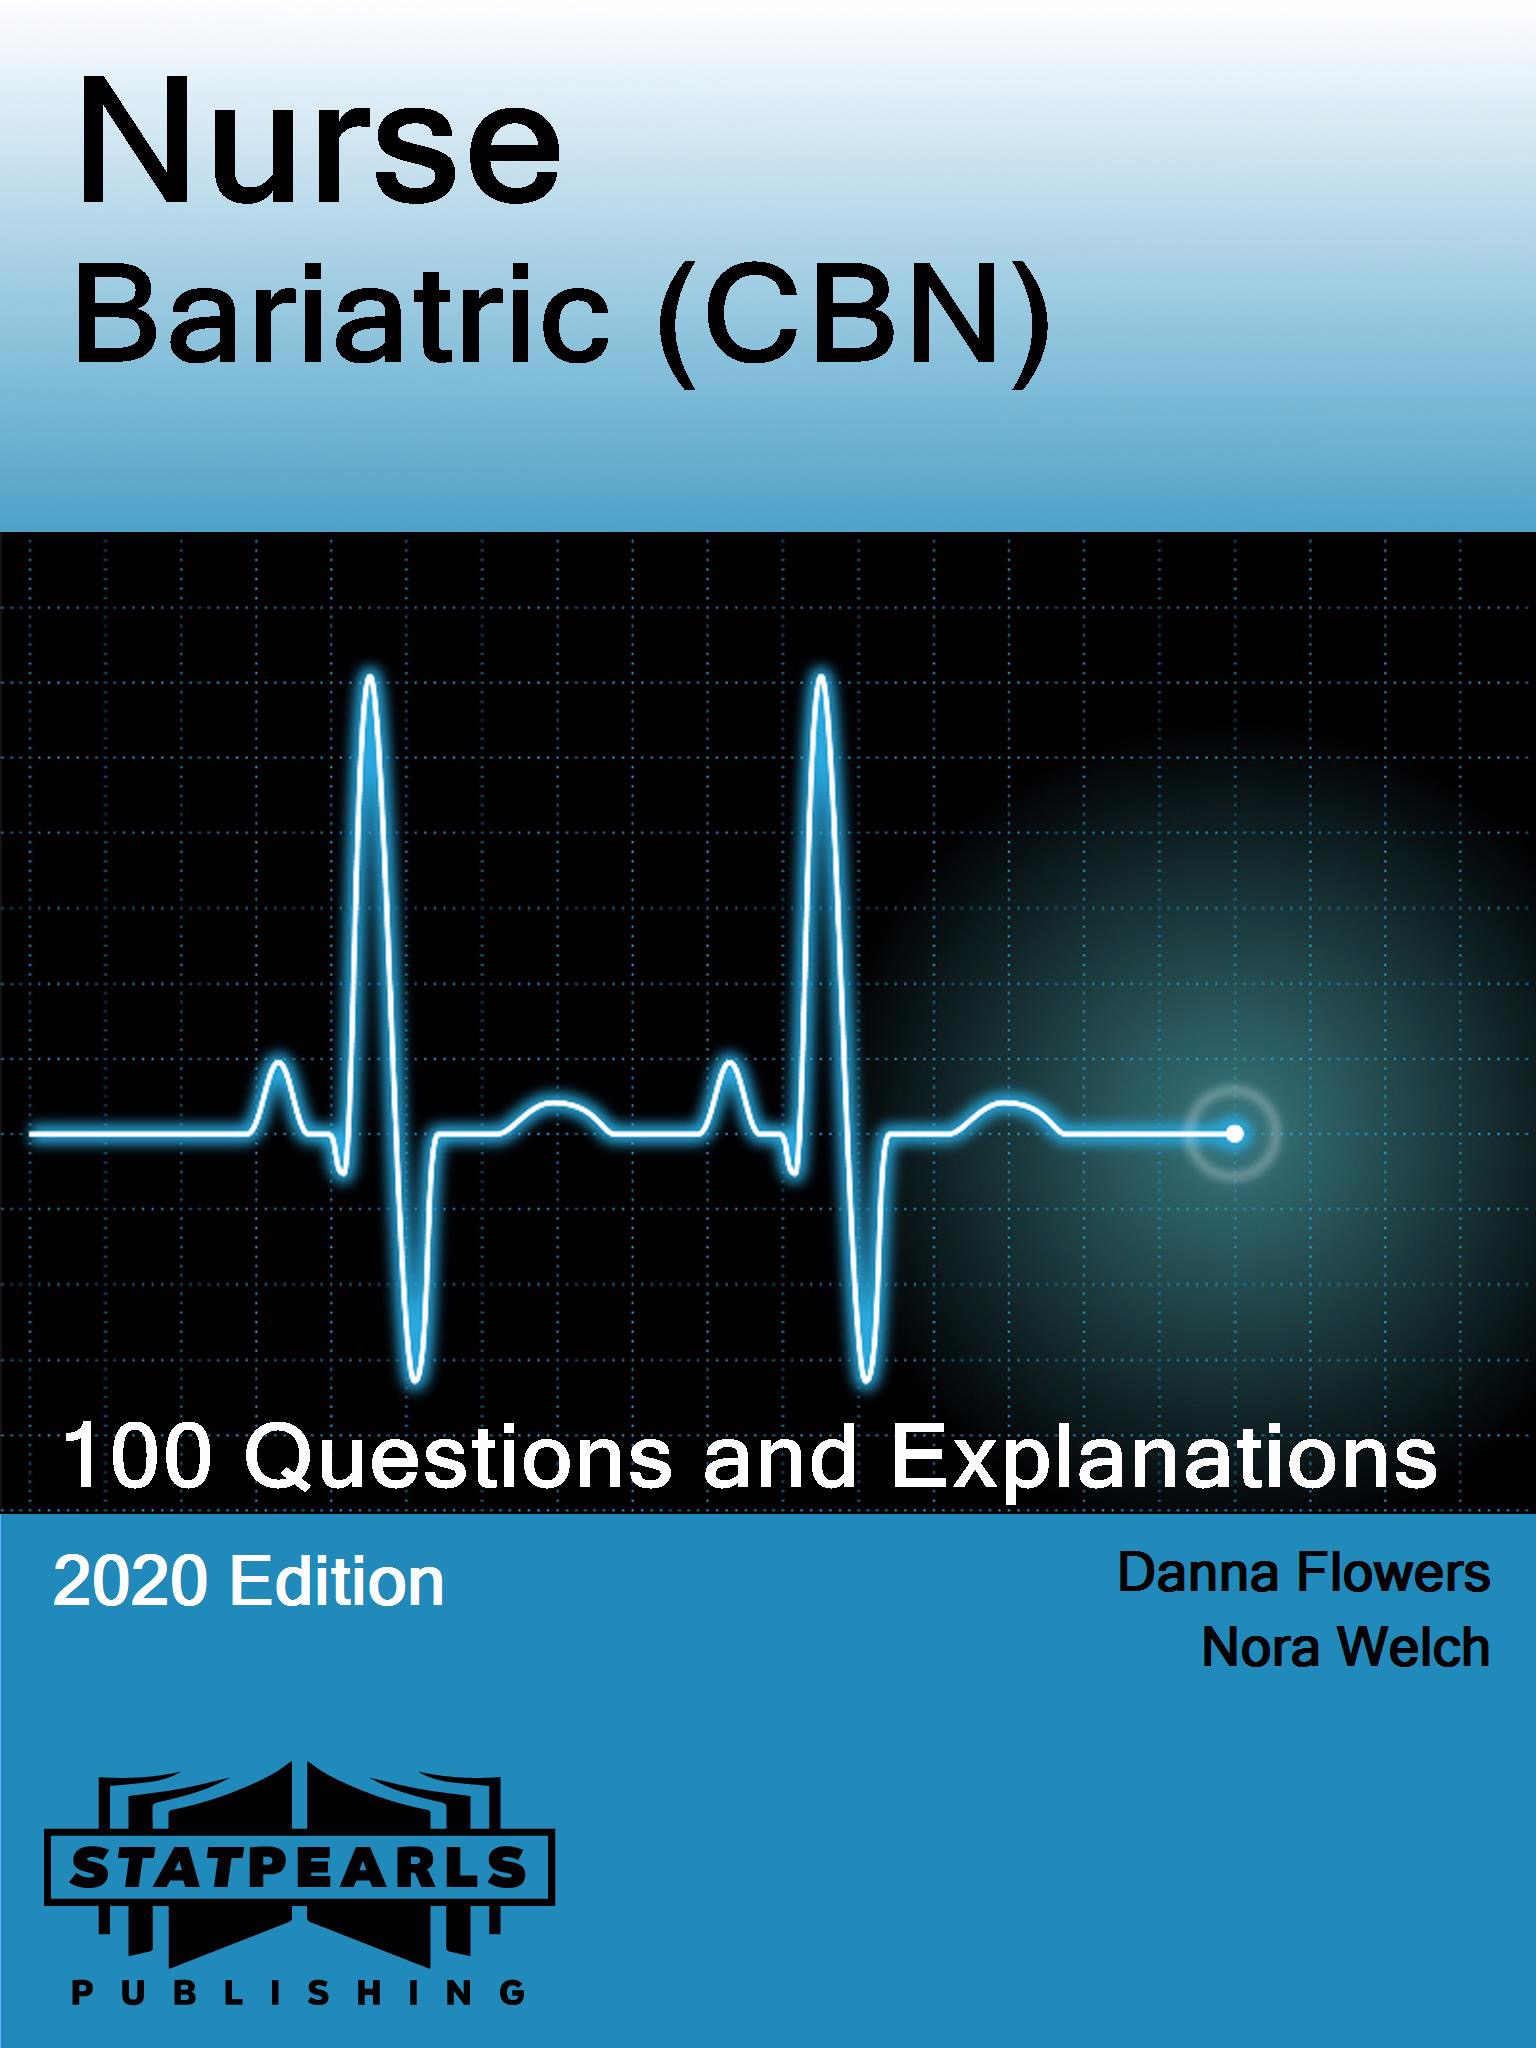 Nurse Bariatric (CBN)